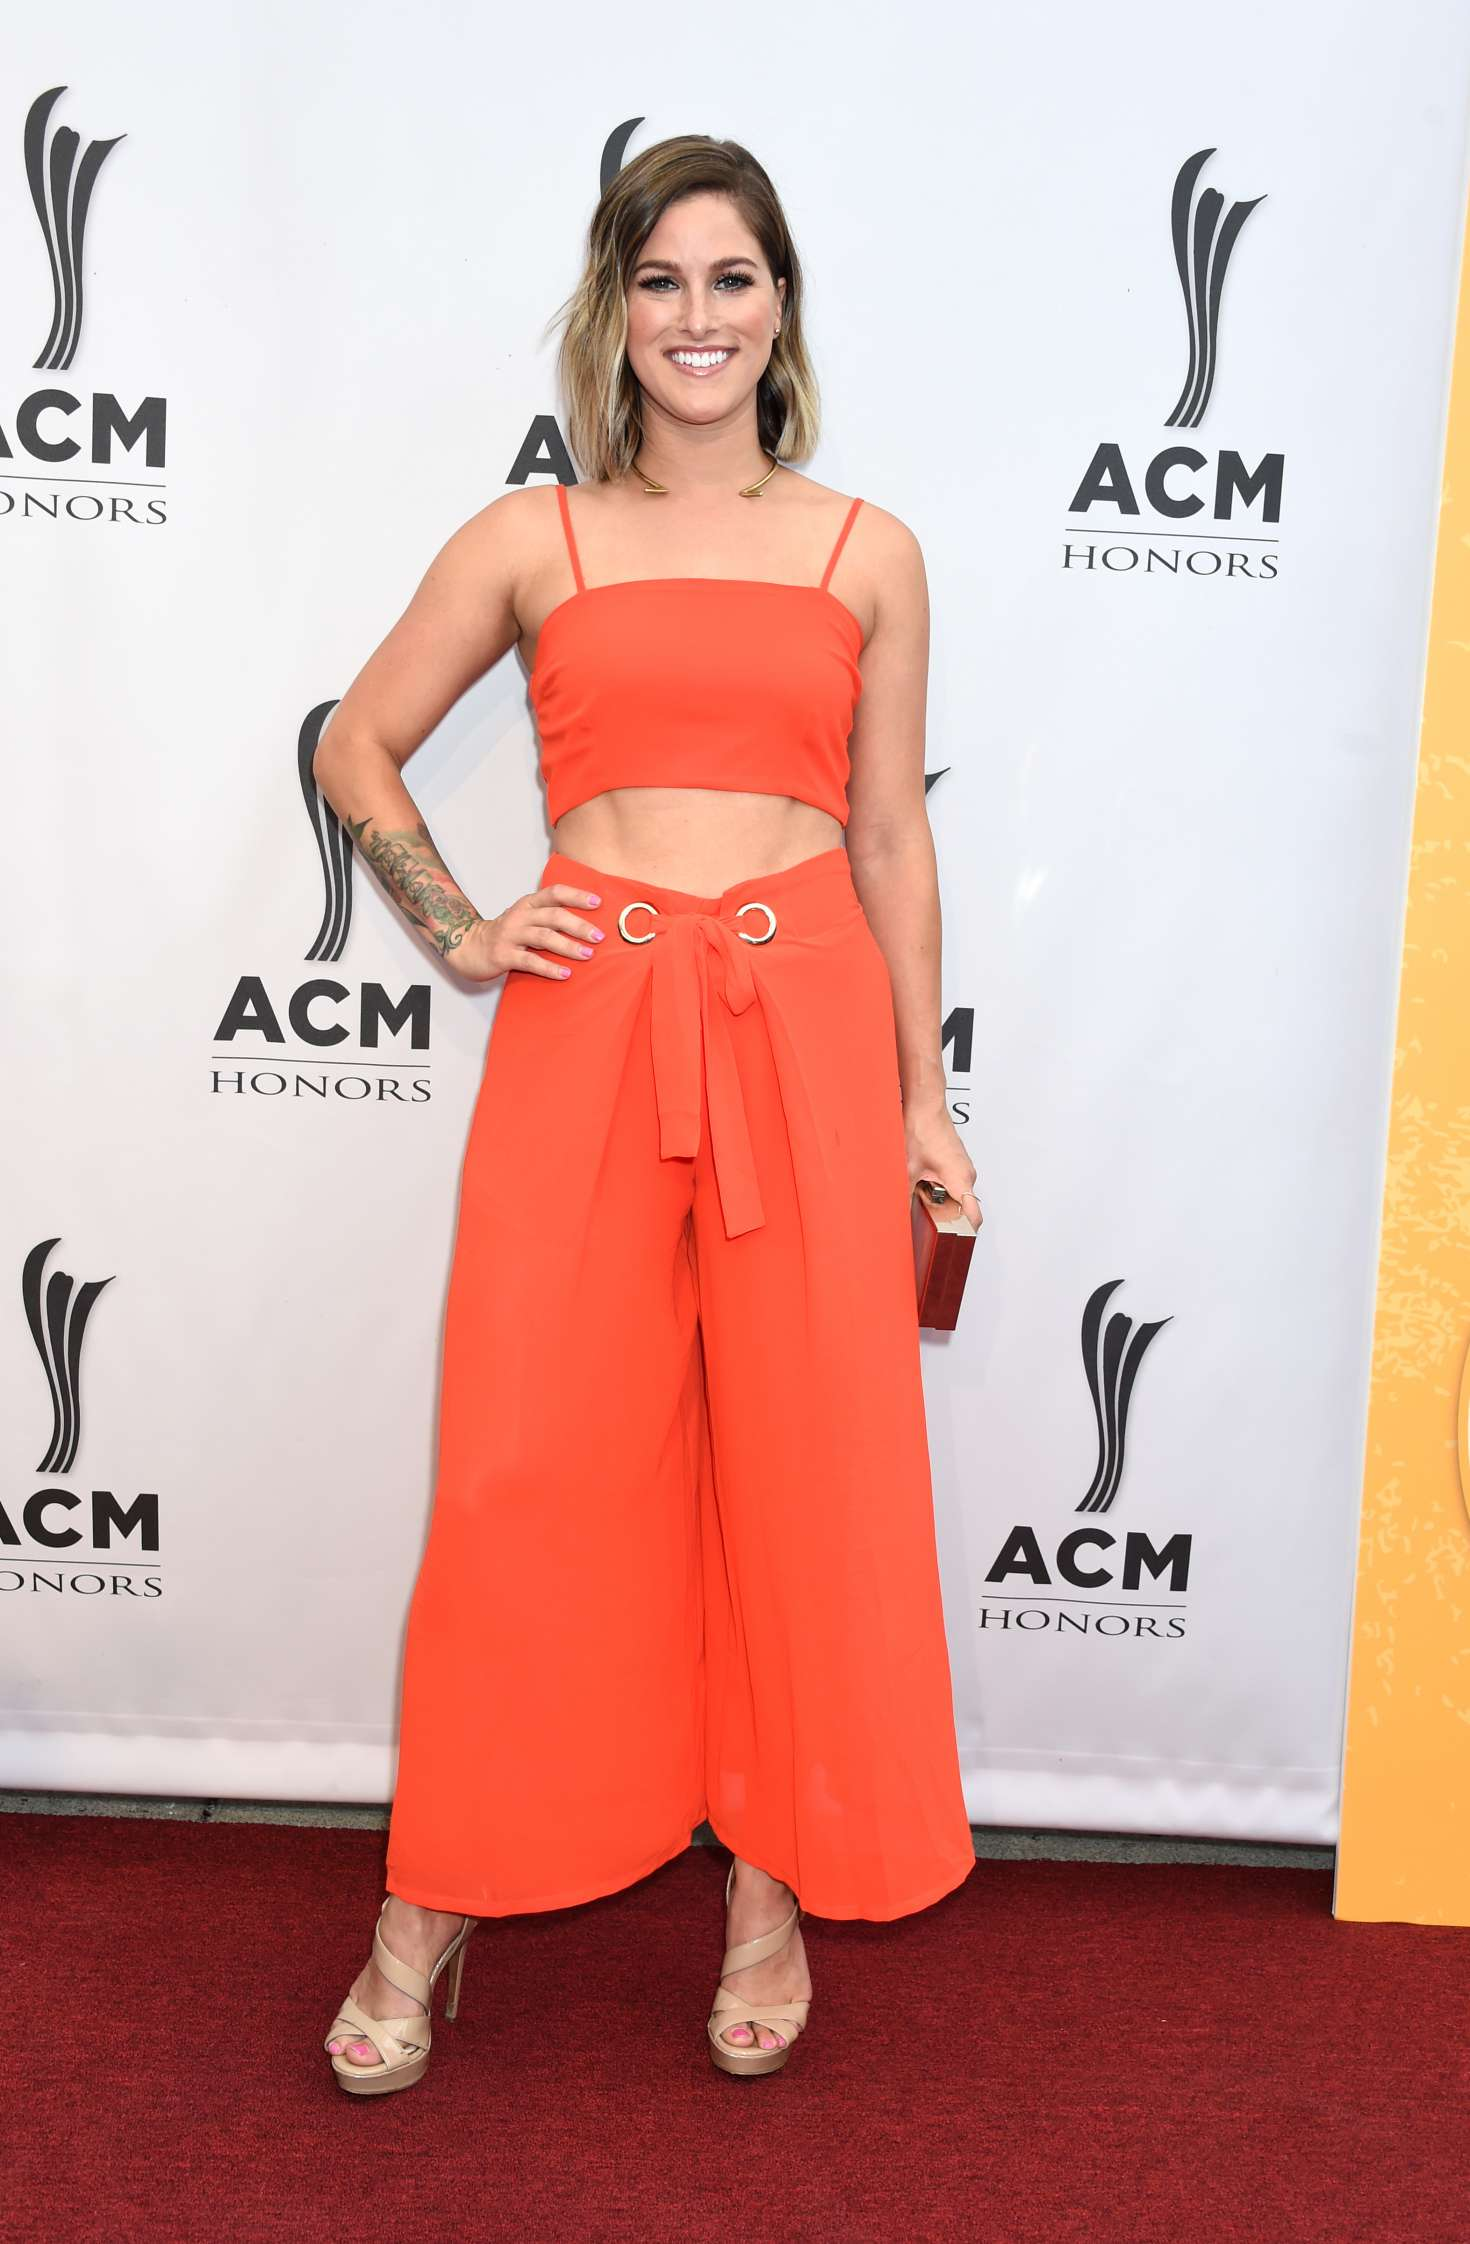 Cassadee Pope 2018 : Cassadee Pope: 12th Annual ACM Honors -08